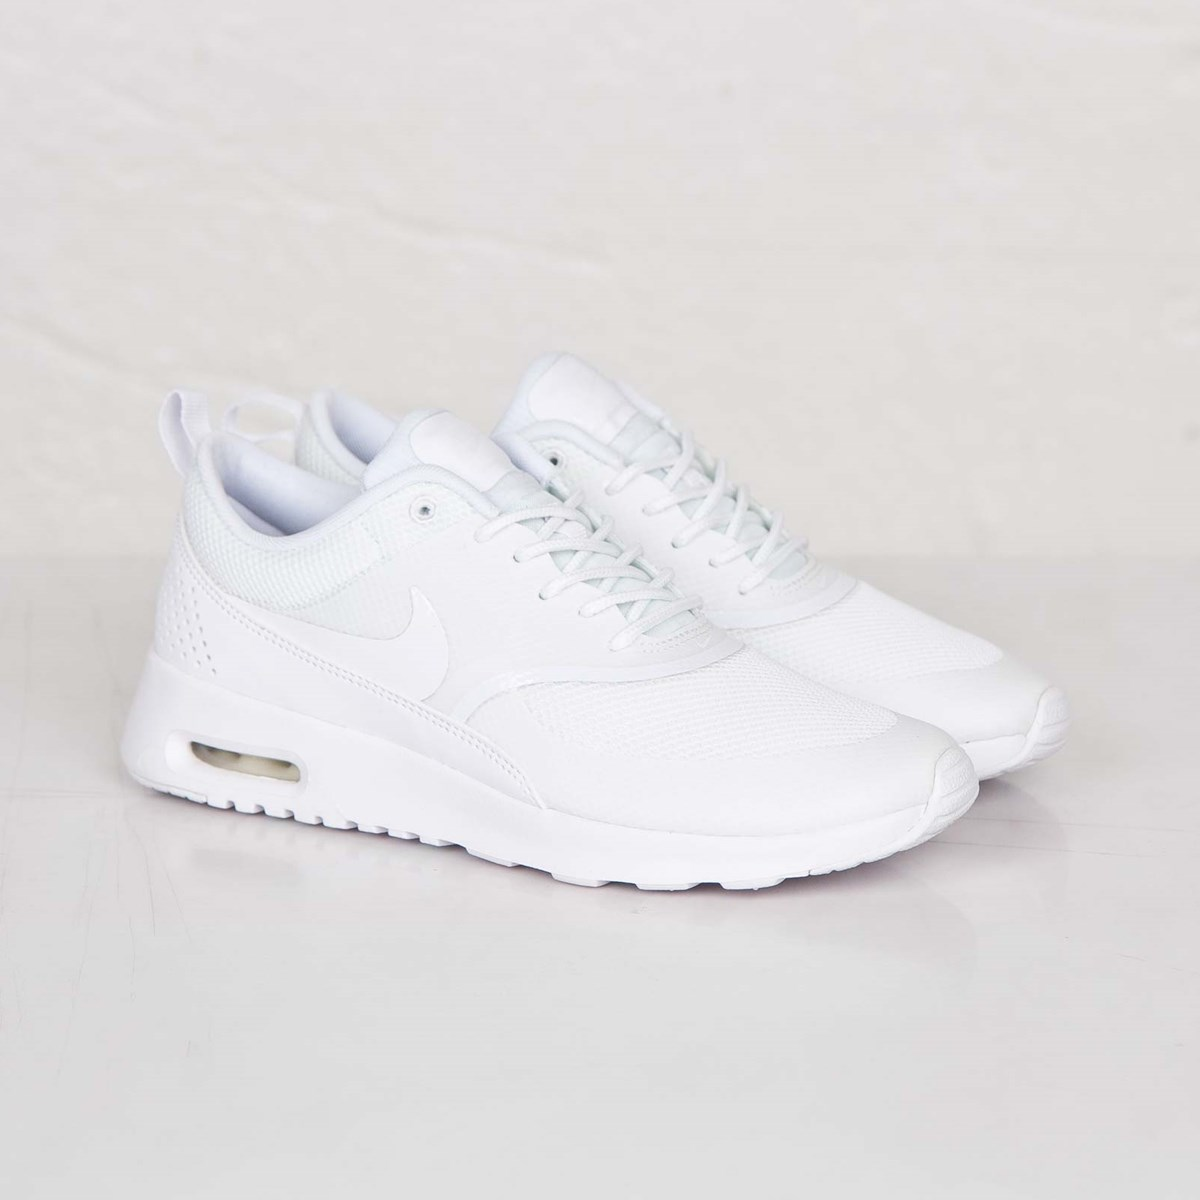 competitive price ed8f7 f9822 Nike Wmns Air Max Thea - 599409-101 - Sneakersnstuff   sneakers    streetwear online since 1999